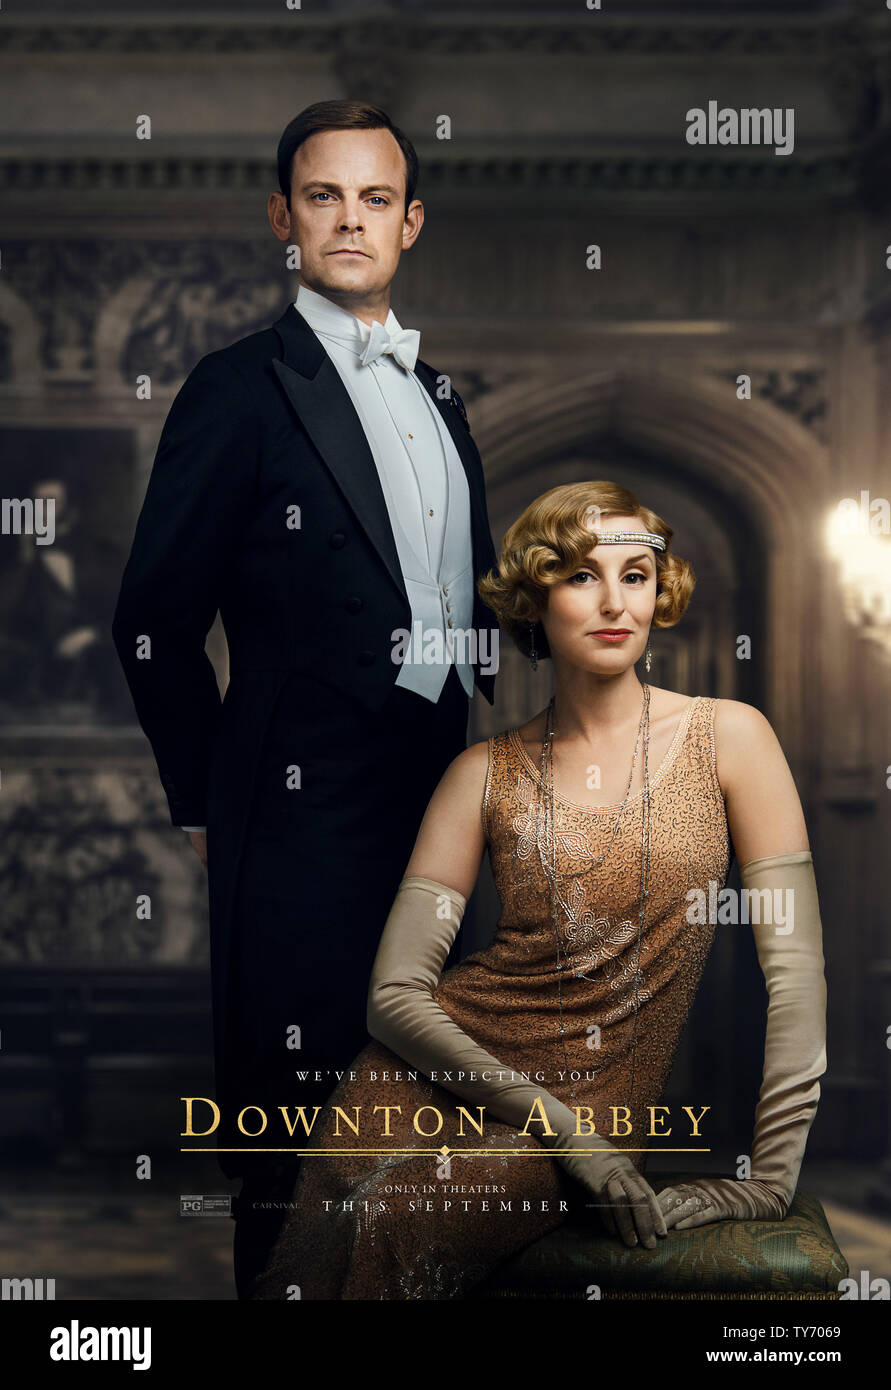 RELEASE DATE: September 20, 2019 TITLE: Downton Abbey STUDIO: Focus Features DIRECTOR: Michael Engler PLOT: Adapted from the hit TV series Downton Abbey that tells the story of the Crawley family, a wealthy owner of a large estate in the English countryside in the early 20th century. STARRING: HARRY HADDON-PATON as Bertie Pelham, LAURA CARMICHAEL as Edith Crawley. (Credit Image: © Focus Features/Entertainment Pictures) - Stock Image